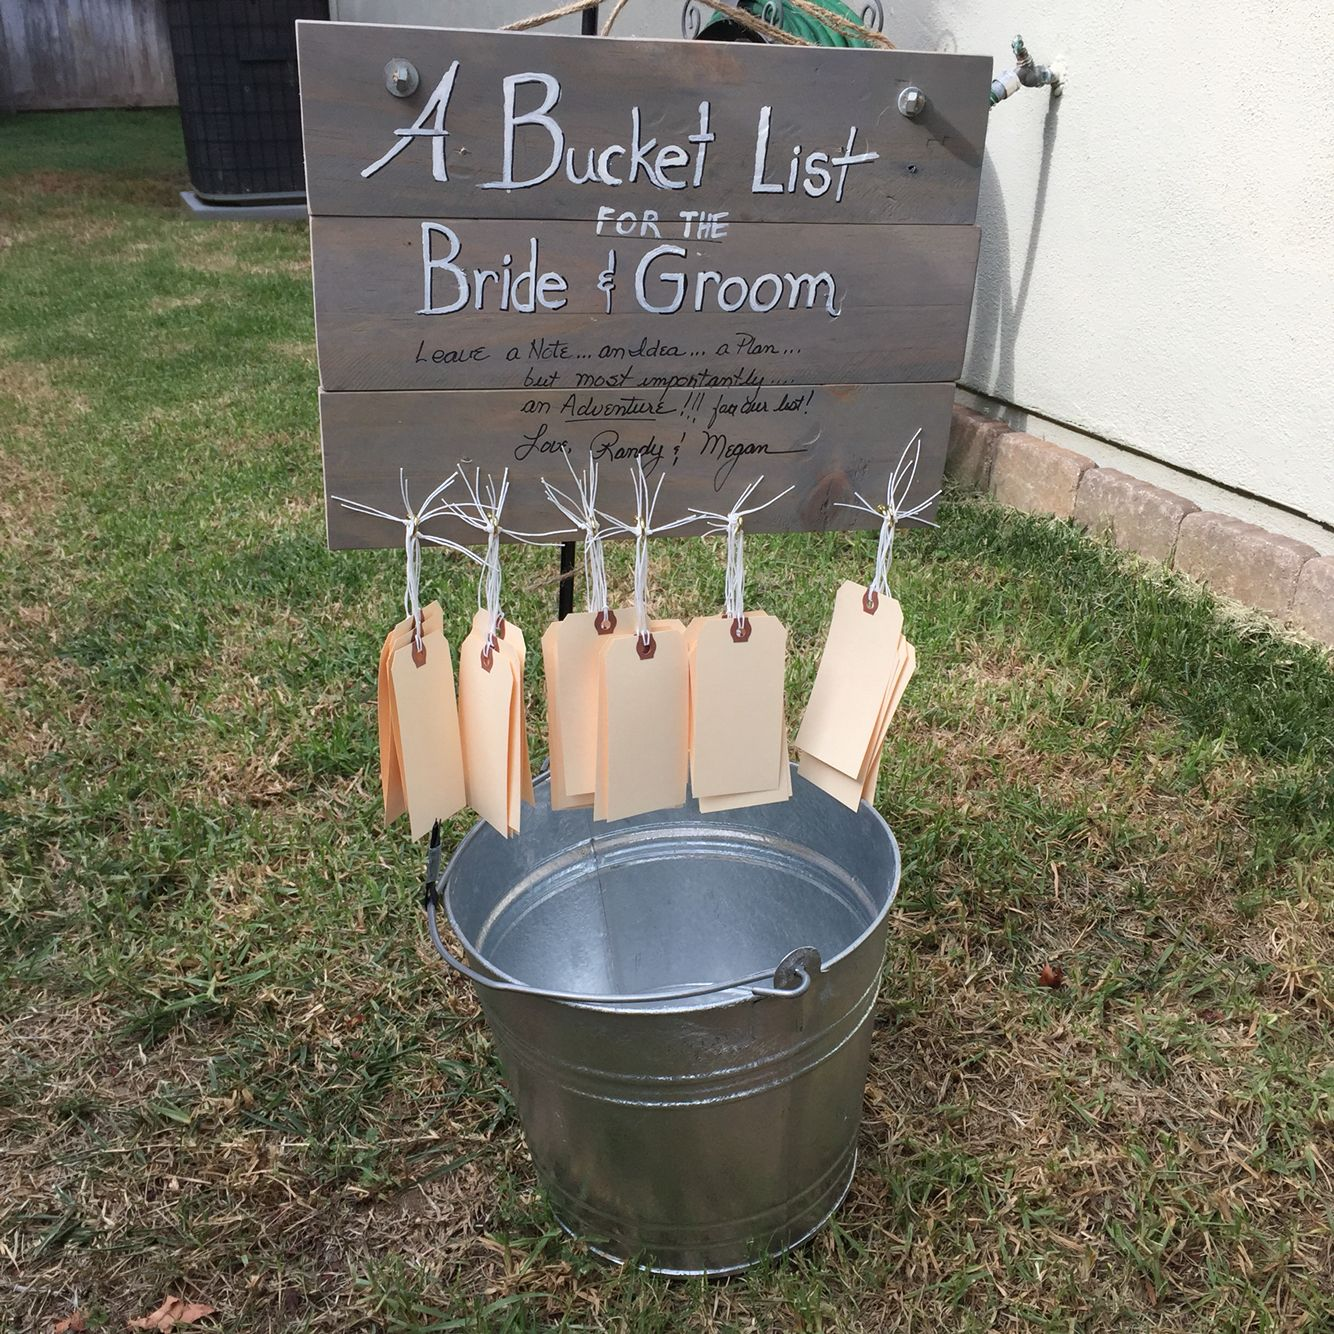 a bucket list for a bridal shower or wedding reception from a deconstructed shipping pallet take a tag and give the new husband and wife some suggestions